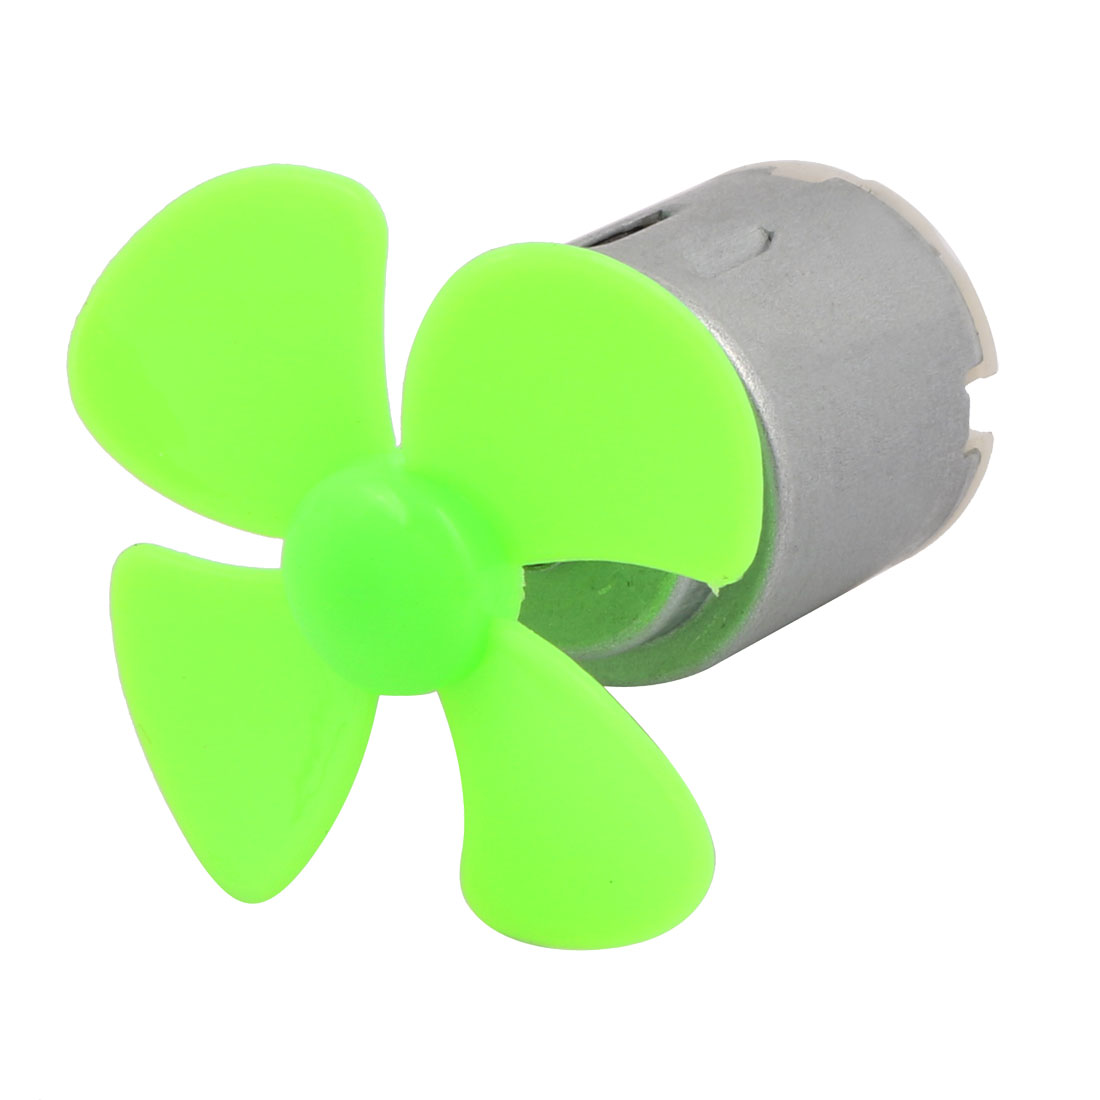 DC 3V 0.15A 19500RPM Strong Force Motor 4 Vanes 40mm Green Propeller for RC Aircraft